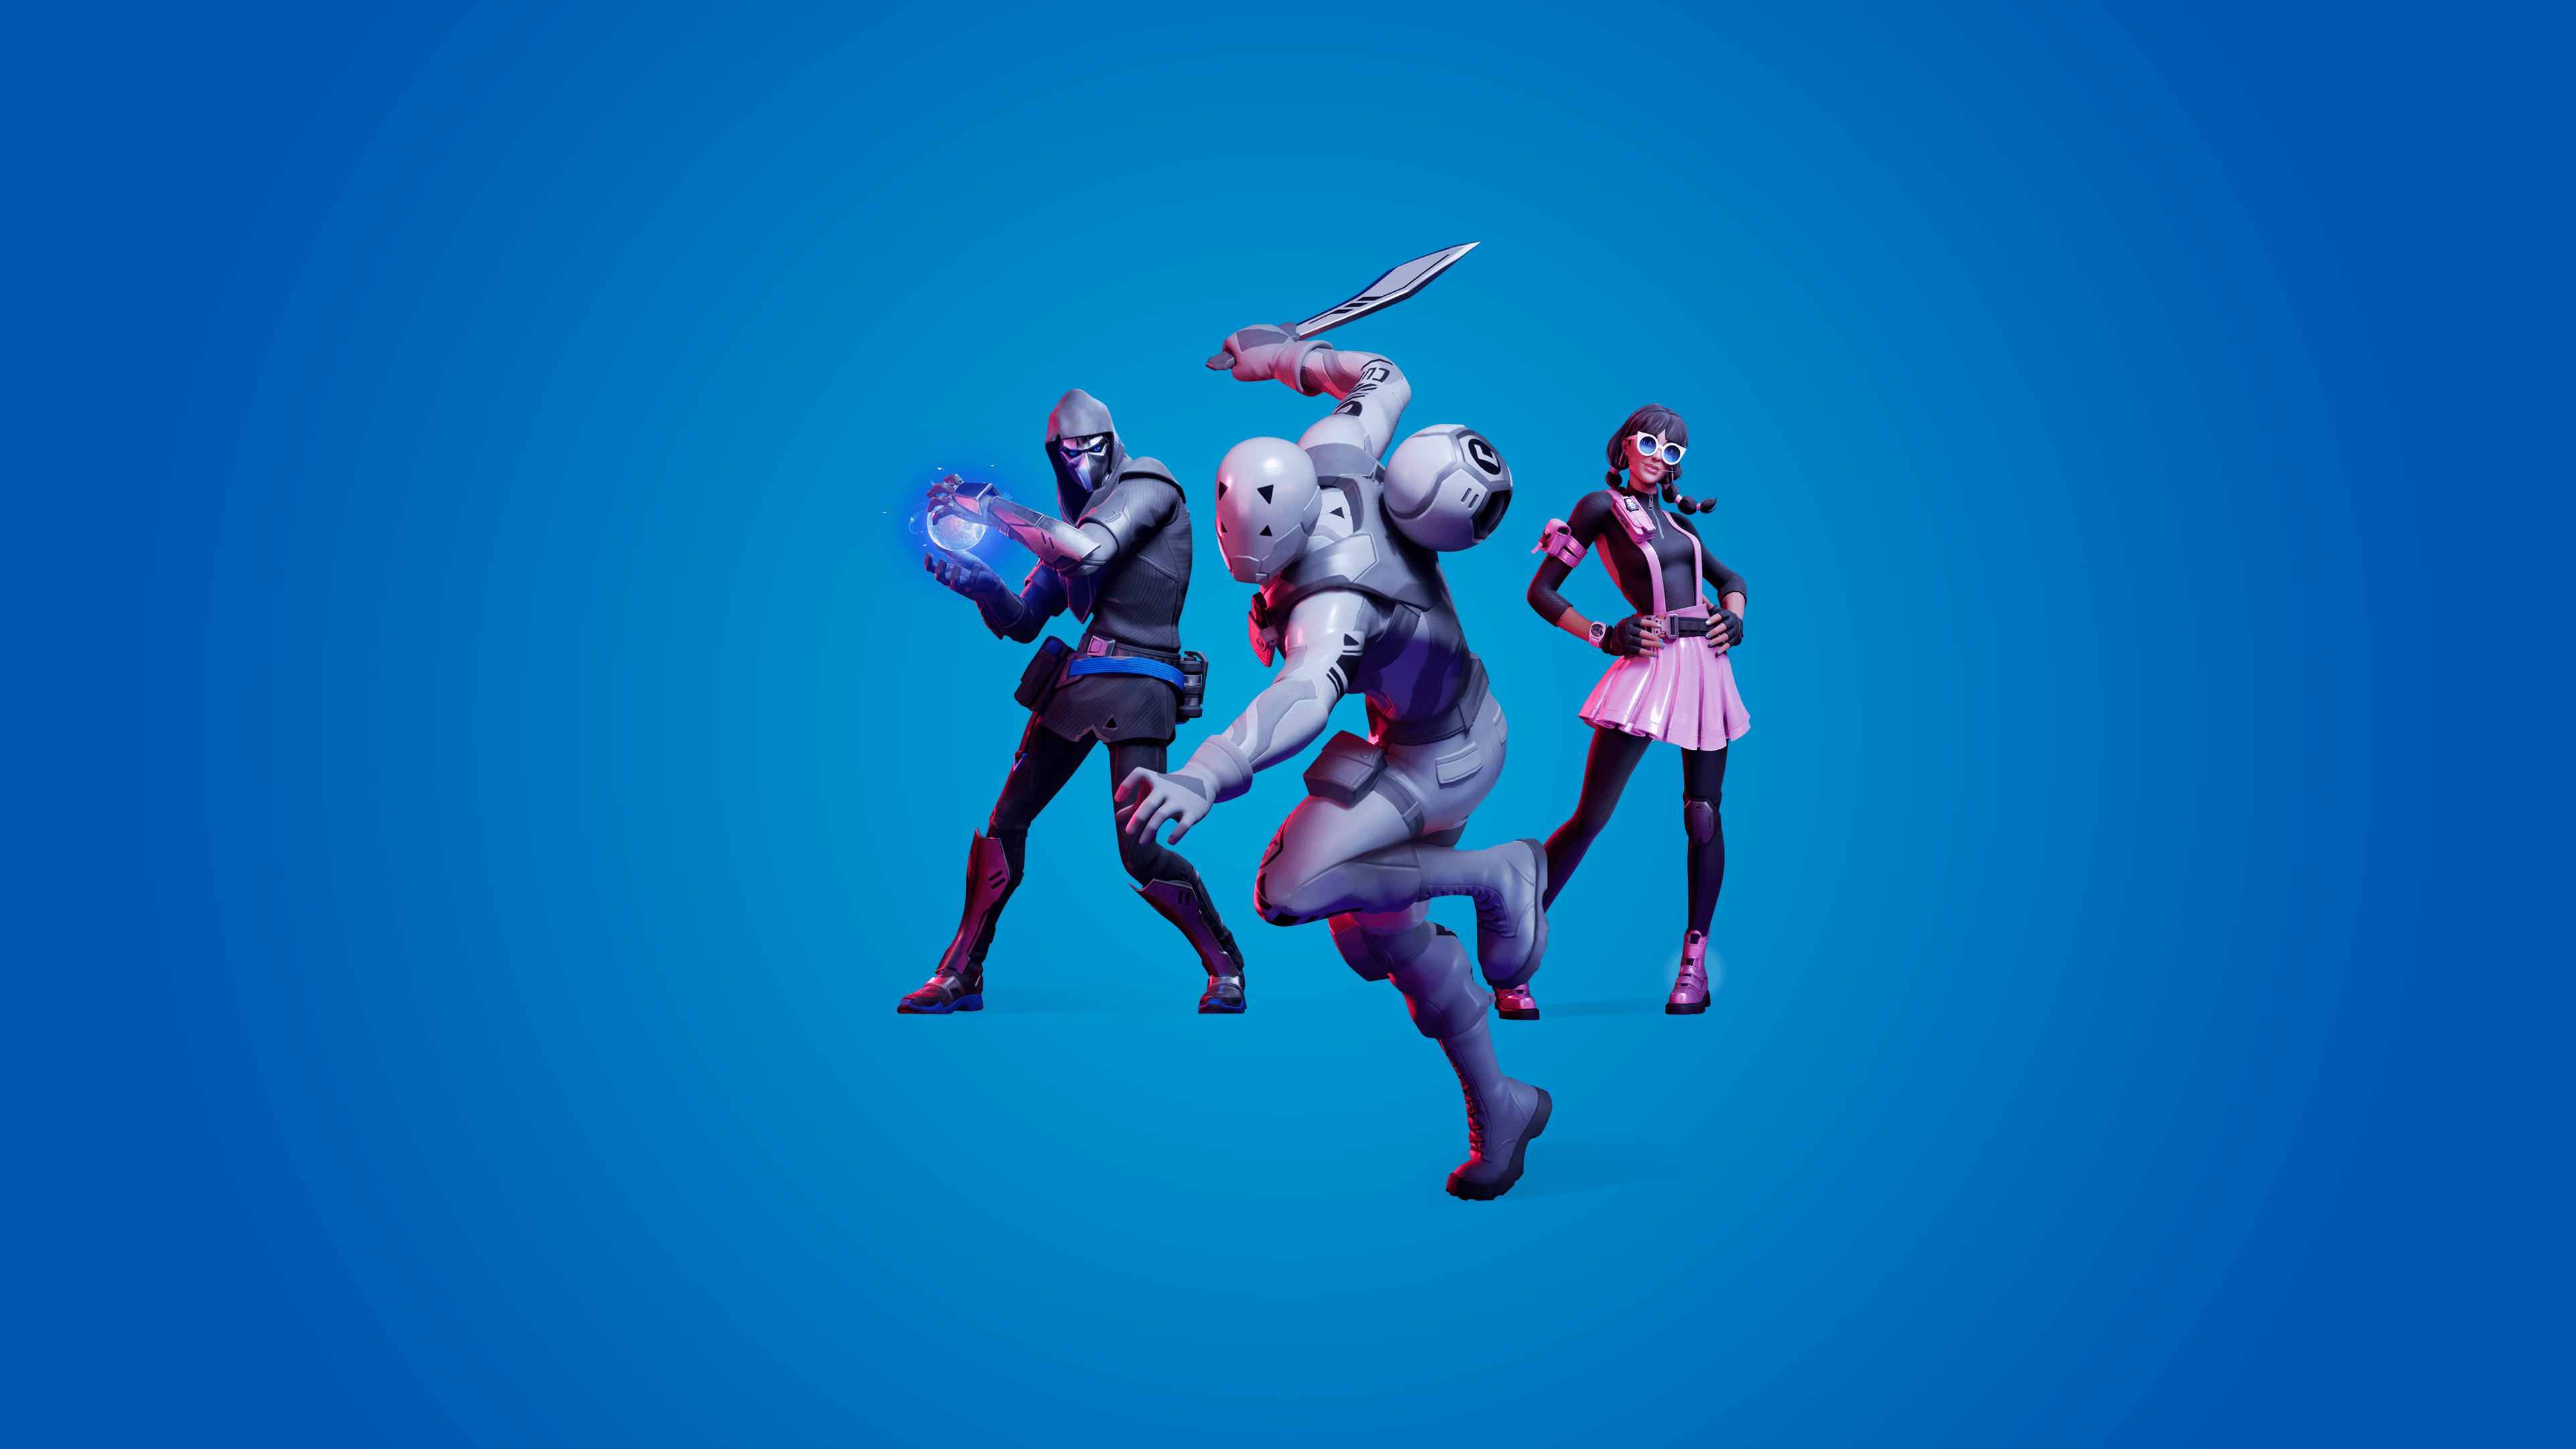 2560x1080 Fortnite Season 11 Game 4k 2560x1080 Resolution Wallpaper Hd Games 4k Wallpapers Images Photos And Background